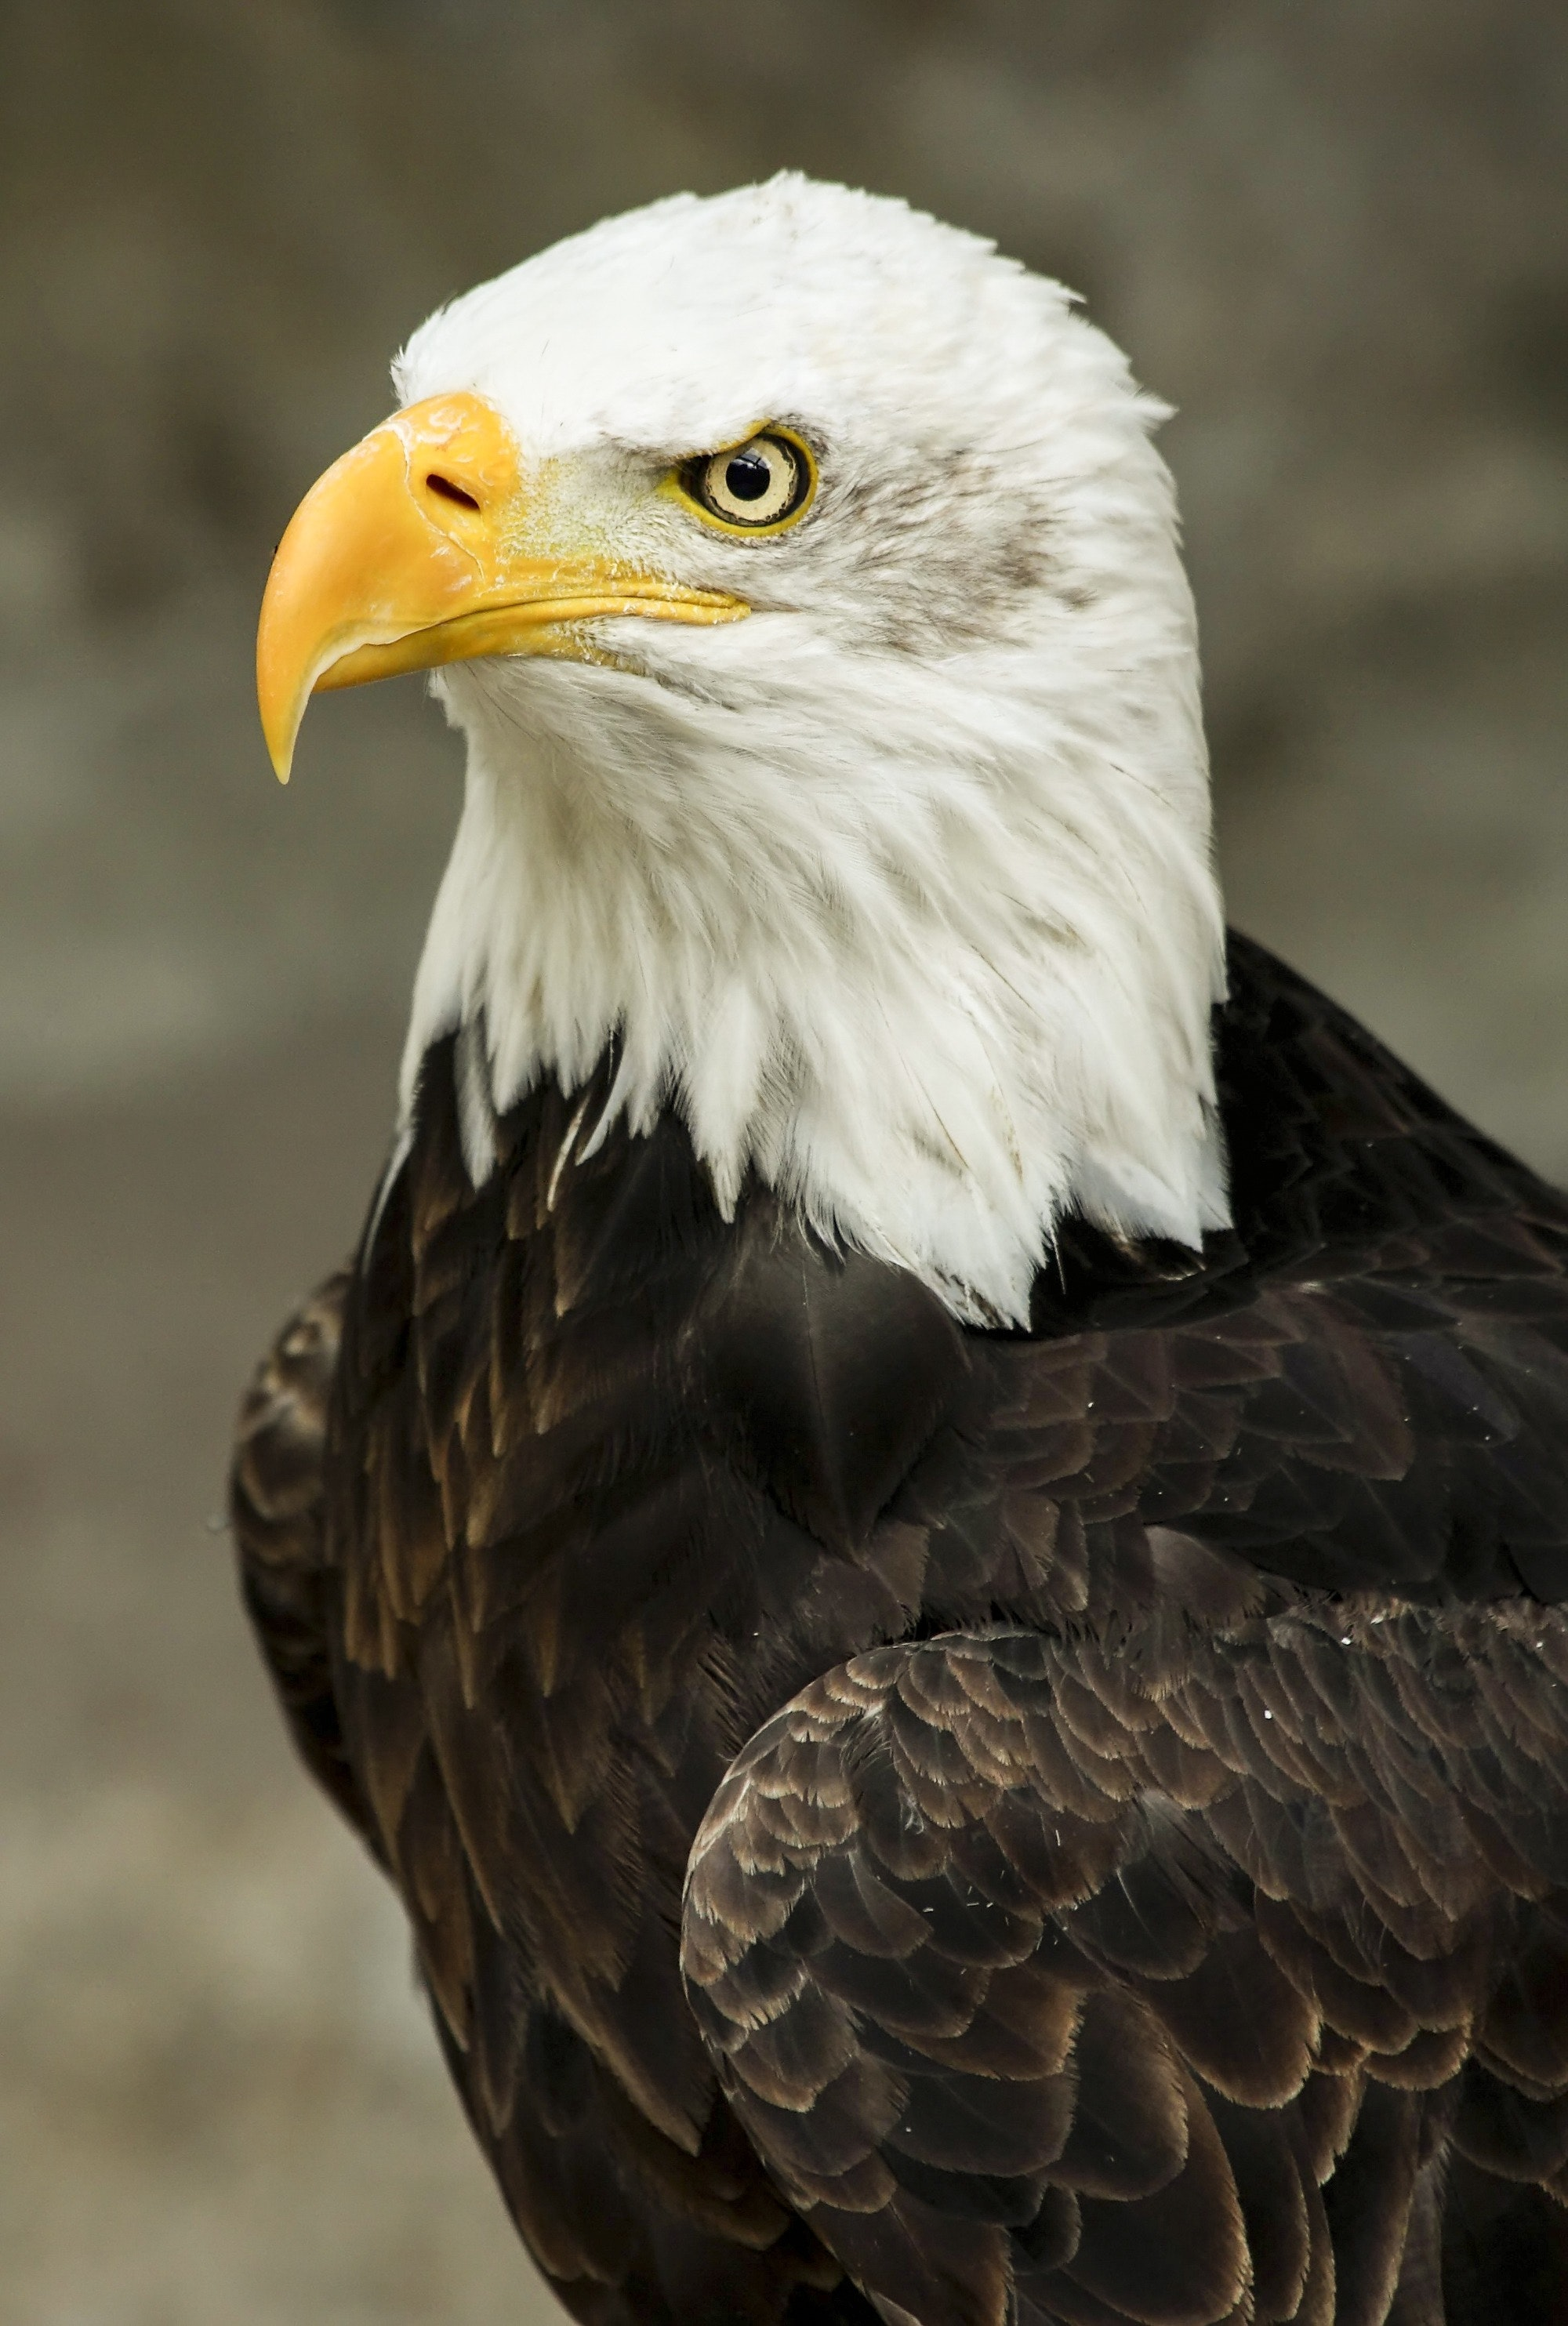 83 Astounding Eagle Images · Pexels · Free Stock Photos